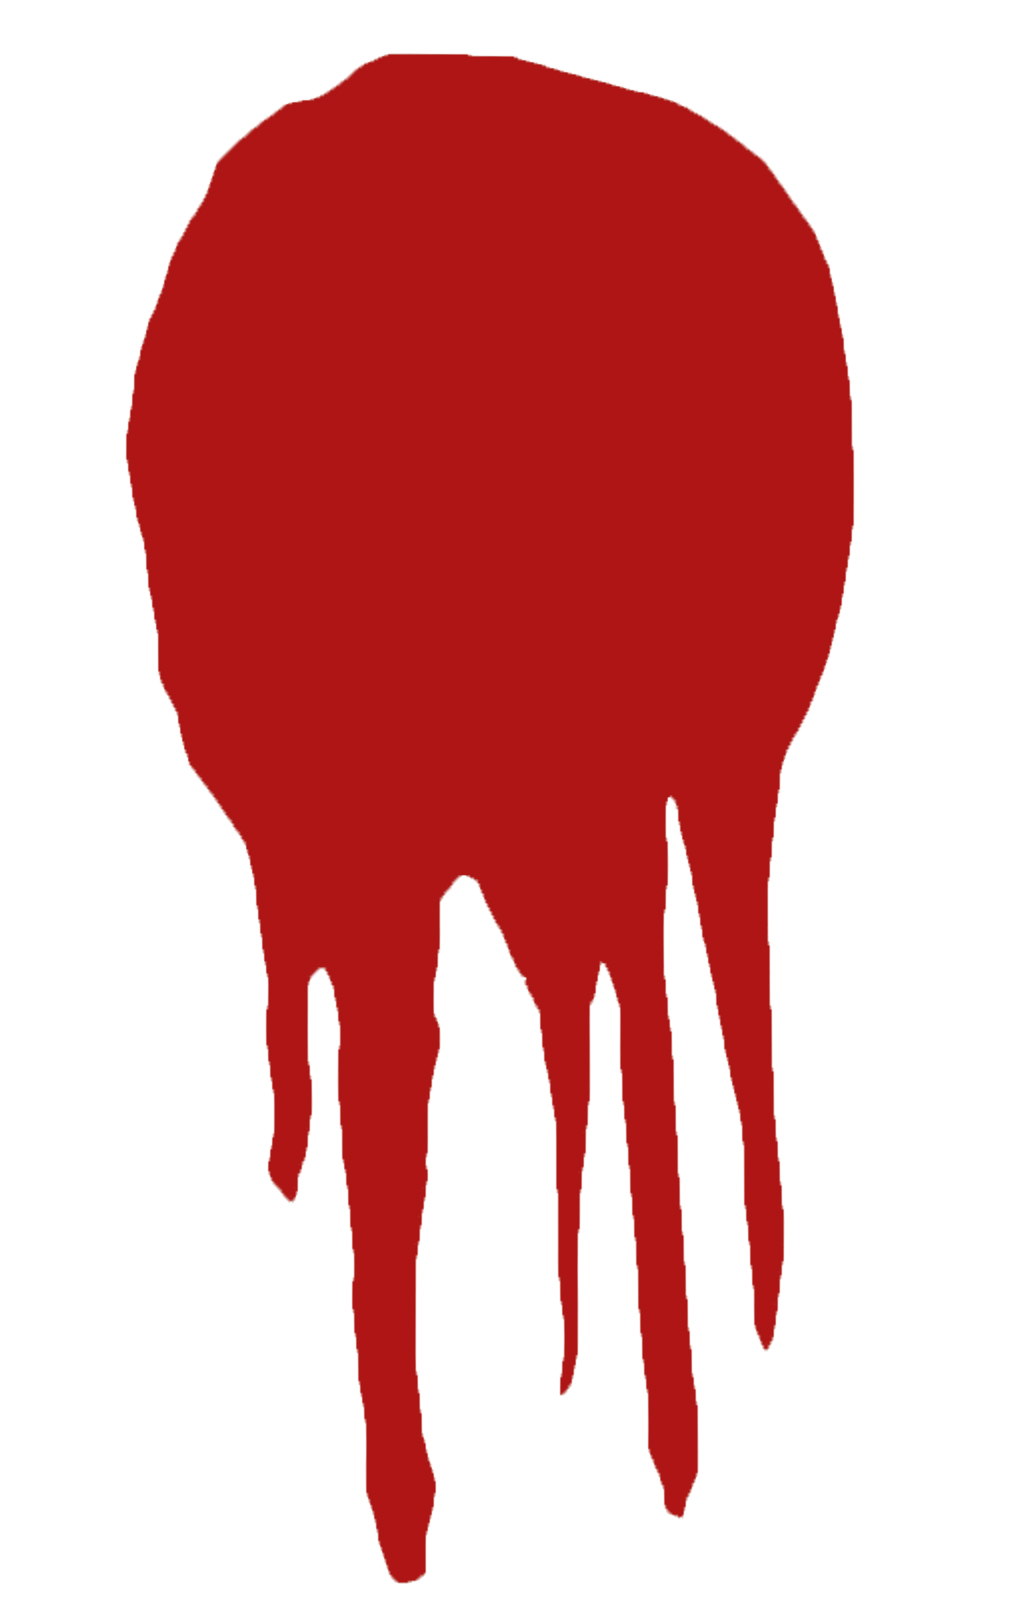 Pictures Of Blood Splatter - Clipart Lib-Pictures Of Blood Splatter - Clipart library-13